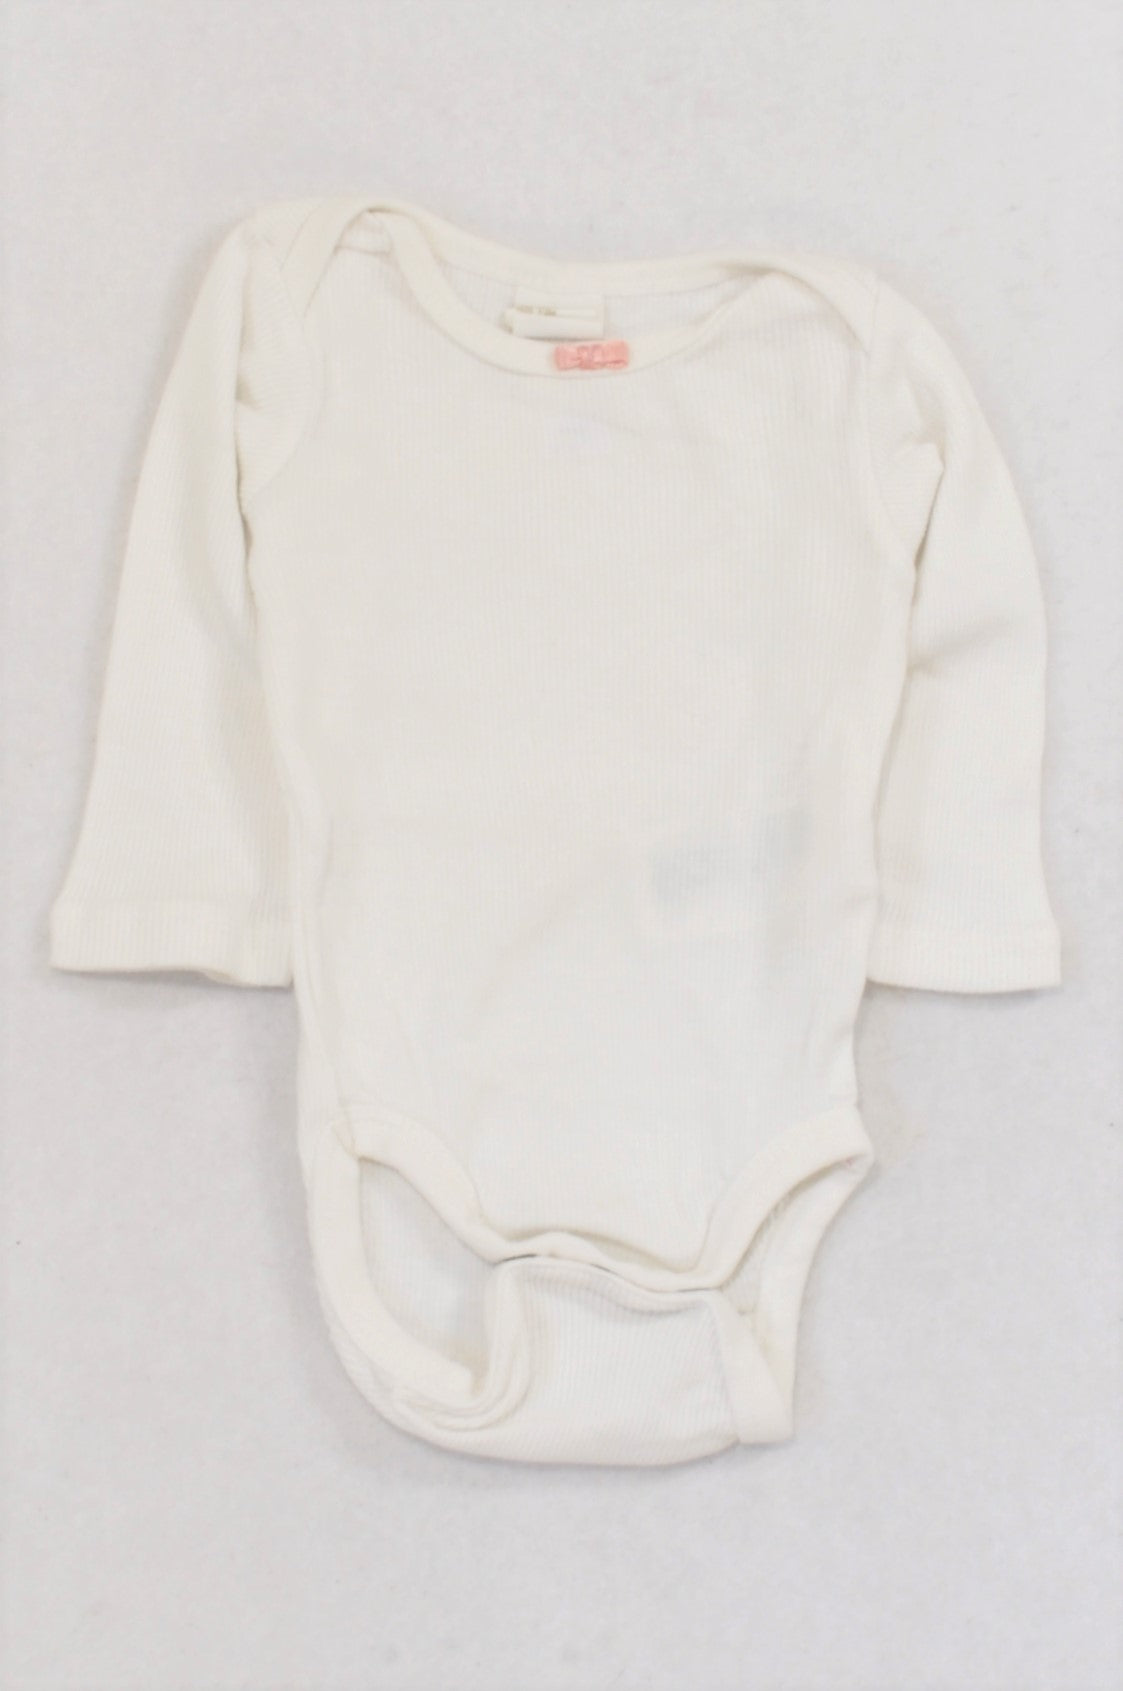 H&M White Ribbed Pink Bow Baby Grow Girls 1-2 months